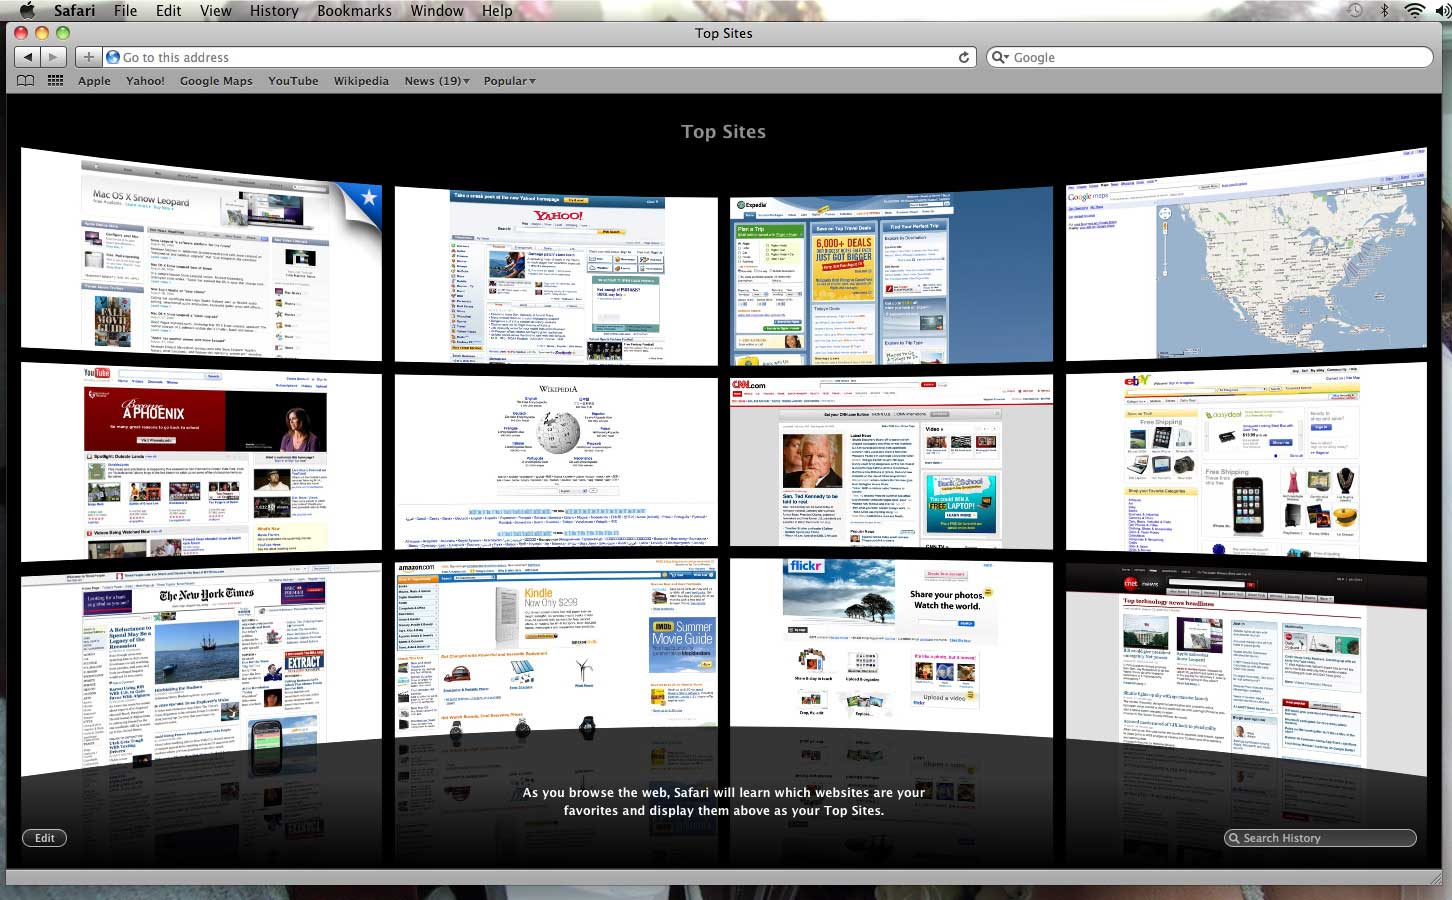 Download images from website safari